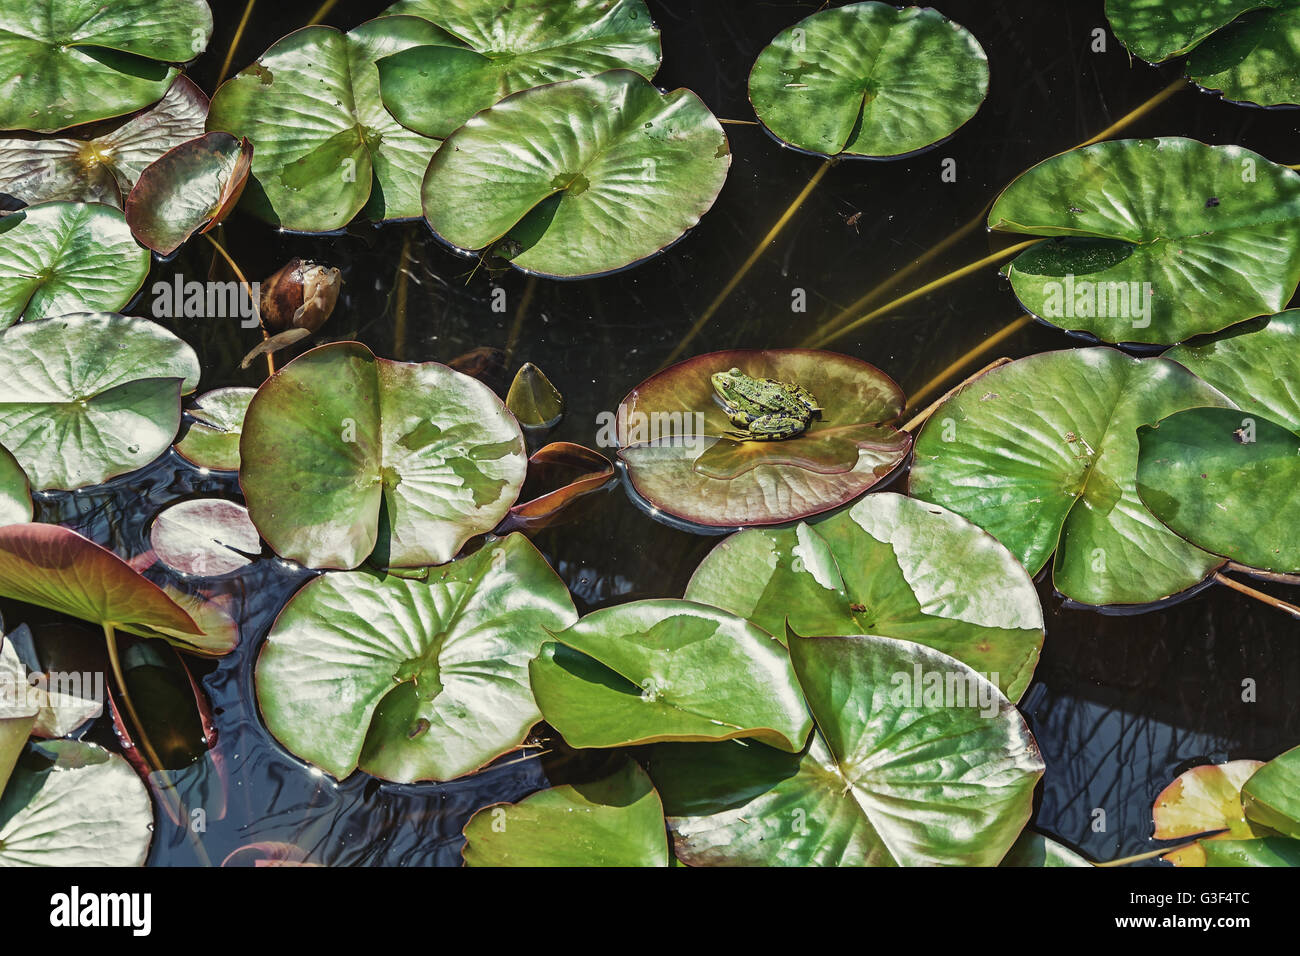 Little frog basking in the sun on the leaf of a water lily pond in the park. - Stock Image